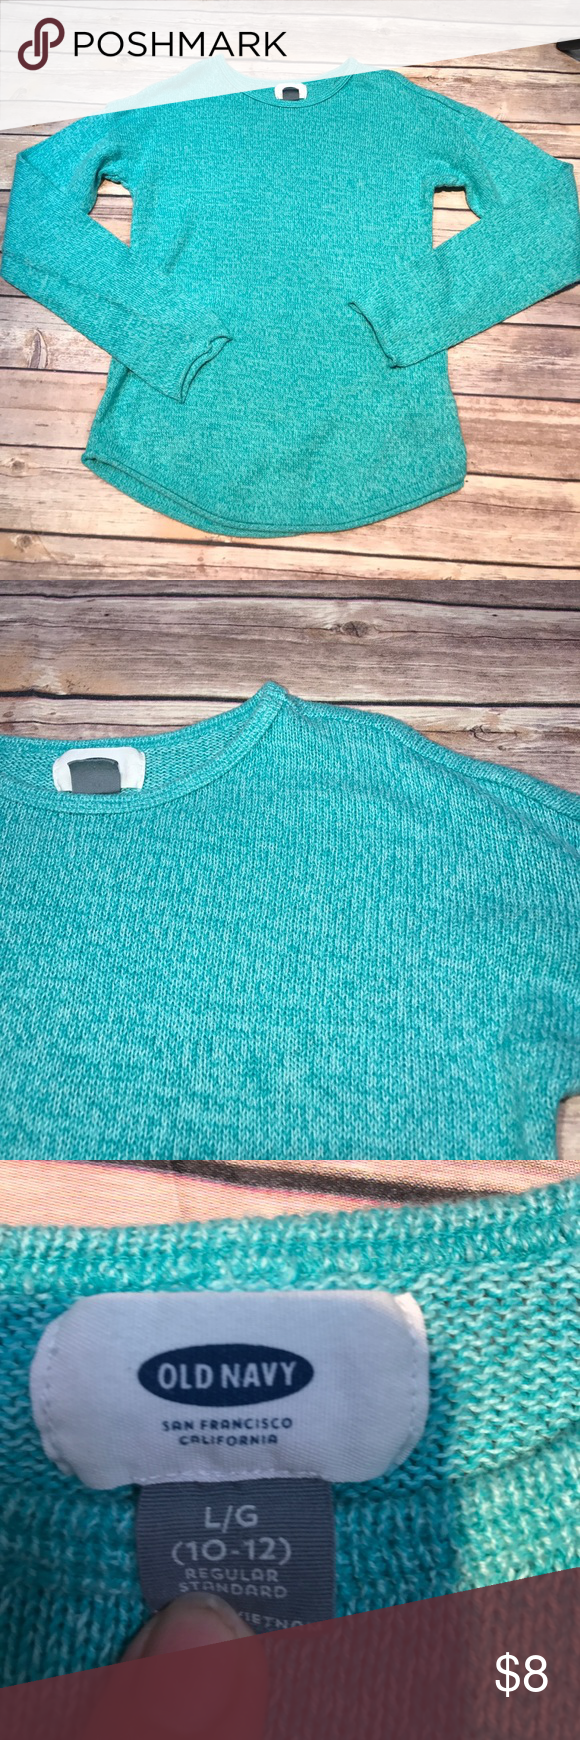 💜Size L (10/12) Old Navy sweater